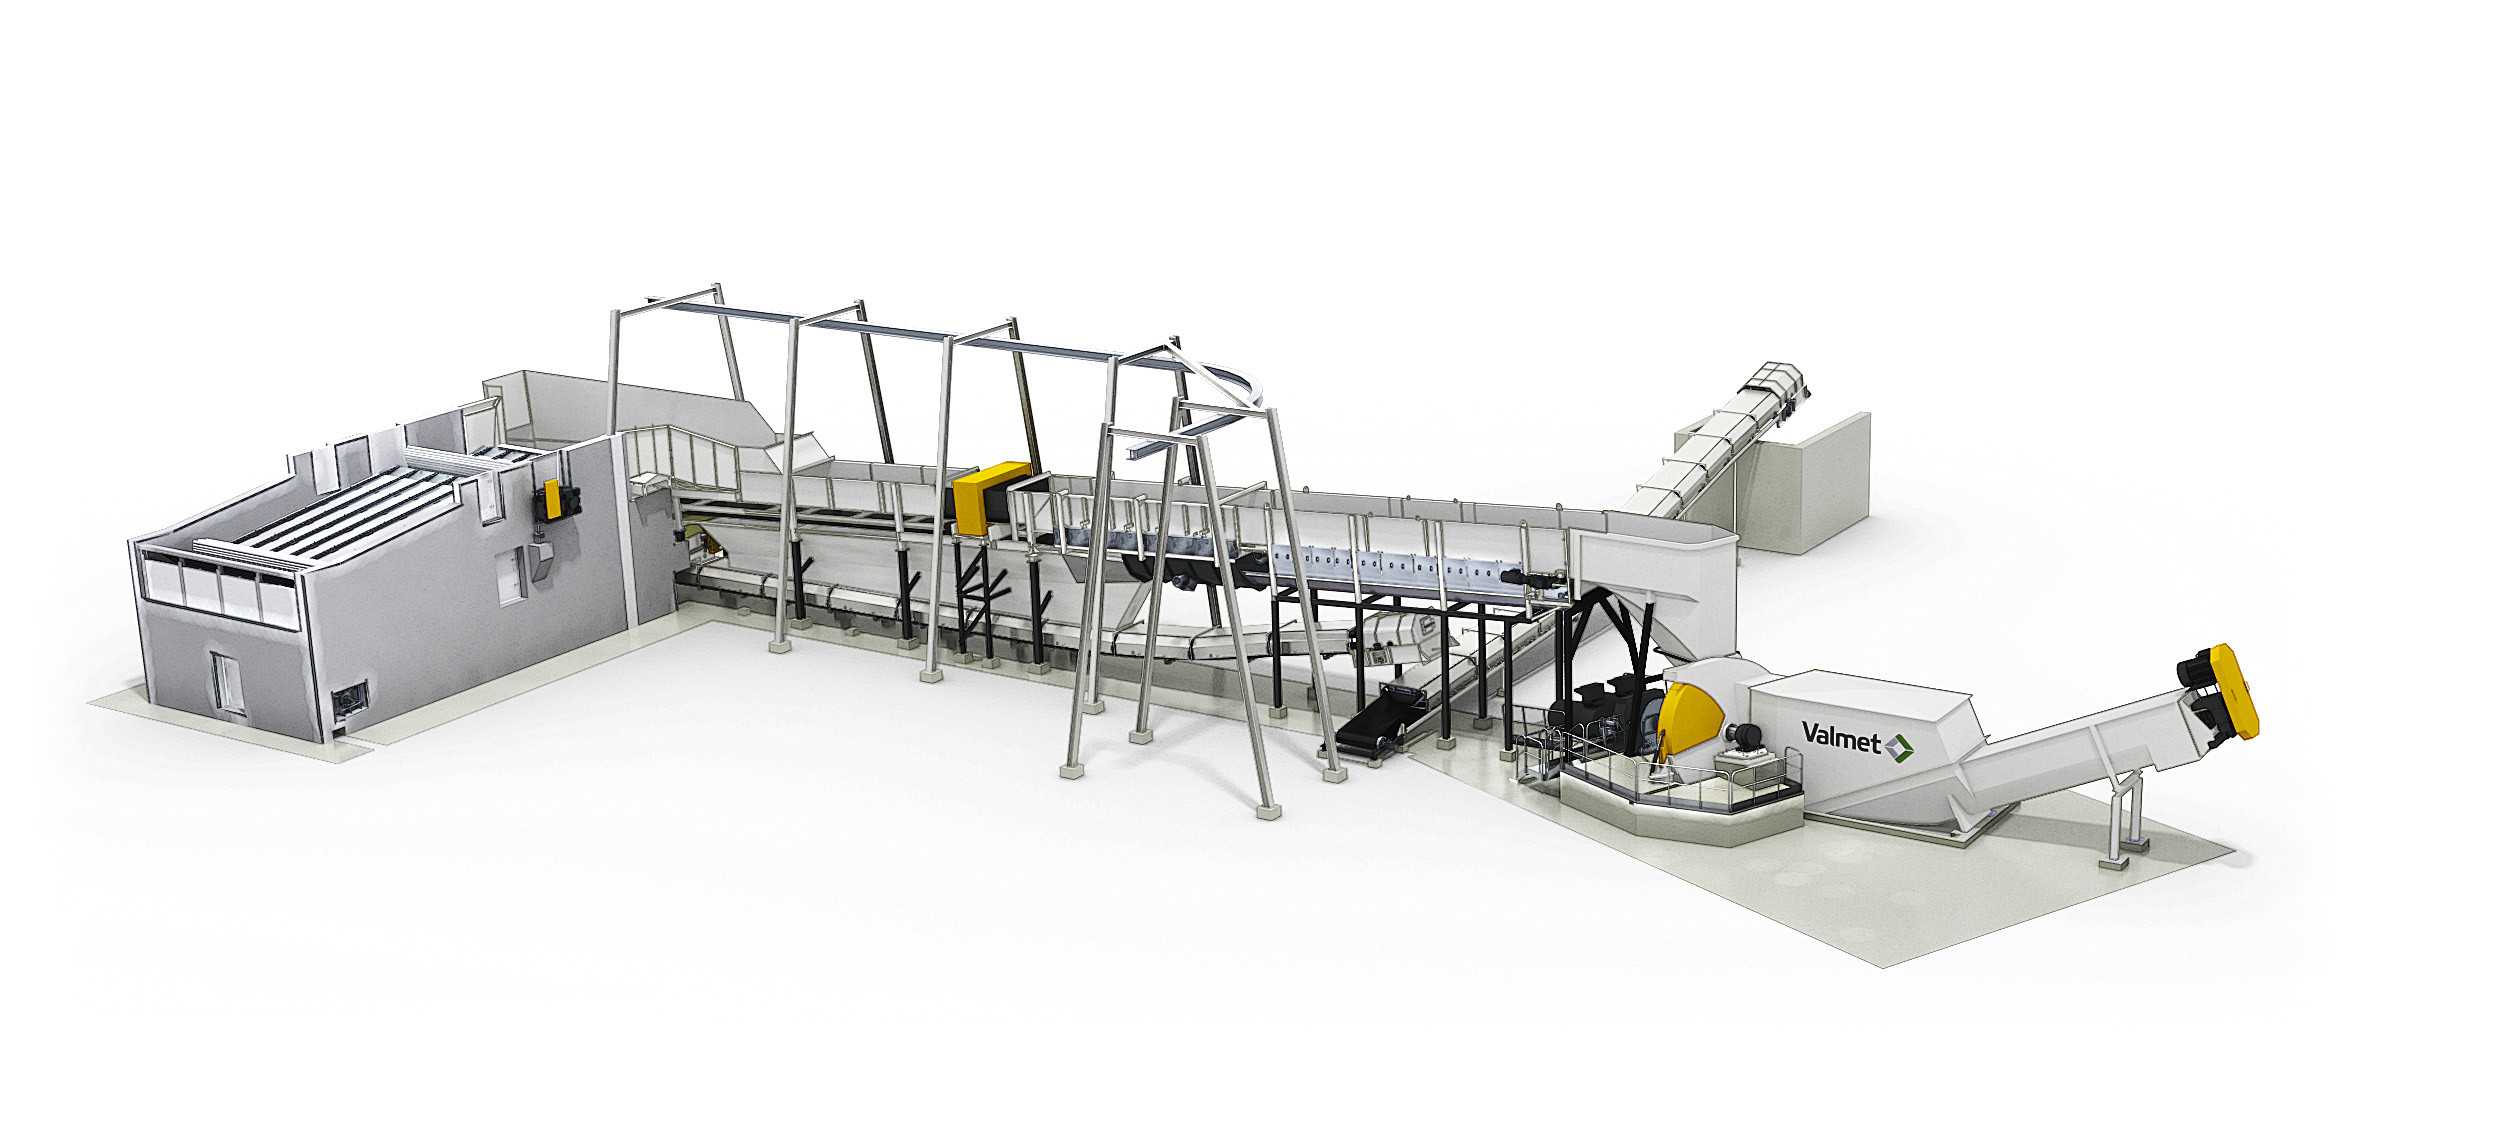 Valmet chipping line and chip handling system